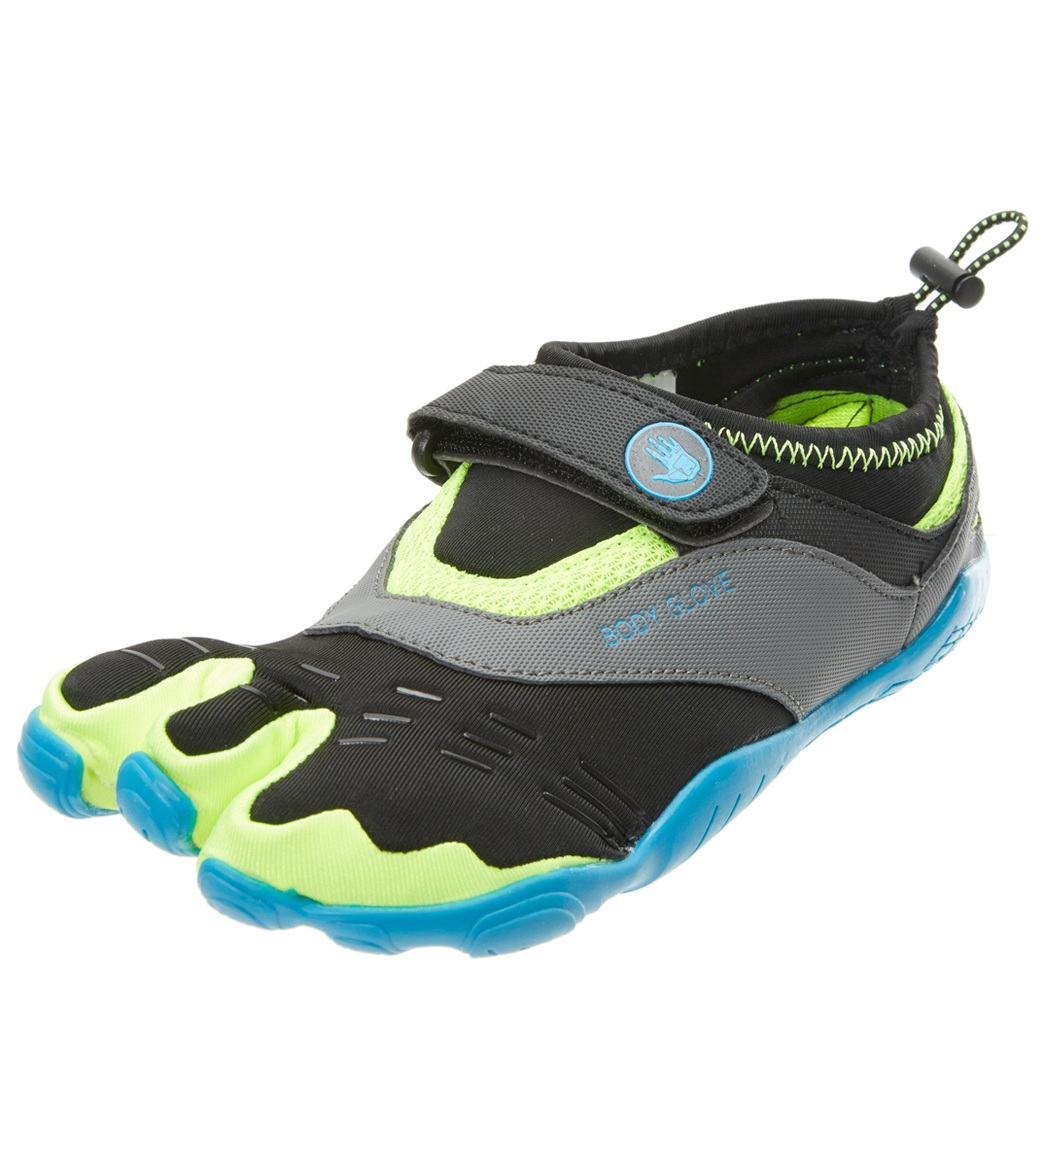 1afab62ee6d3 Body Glove Women s 3T Barefoot Max Water Shoe at SwimOutlet.com - Free  Shipping